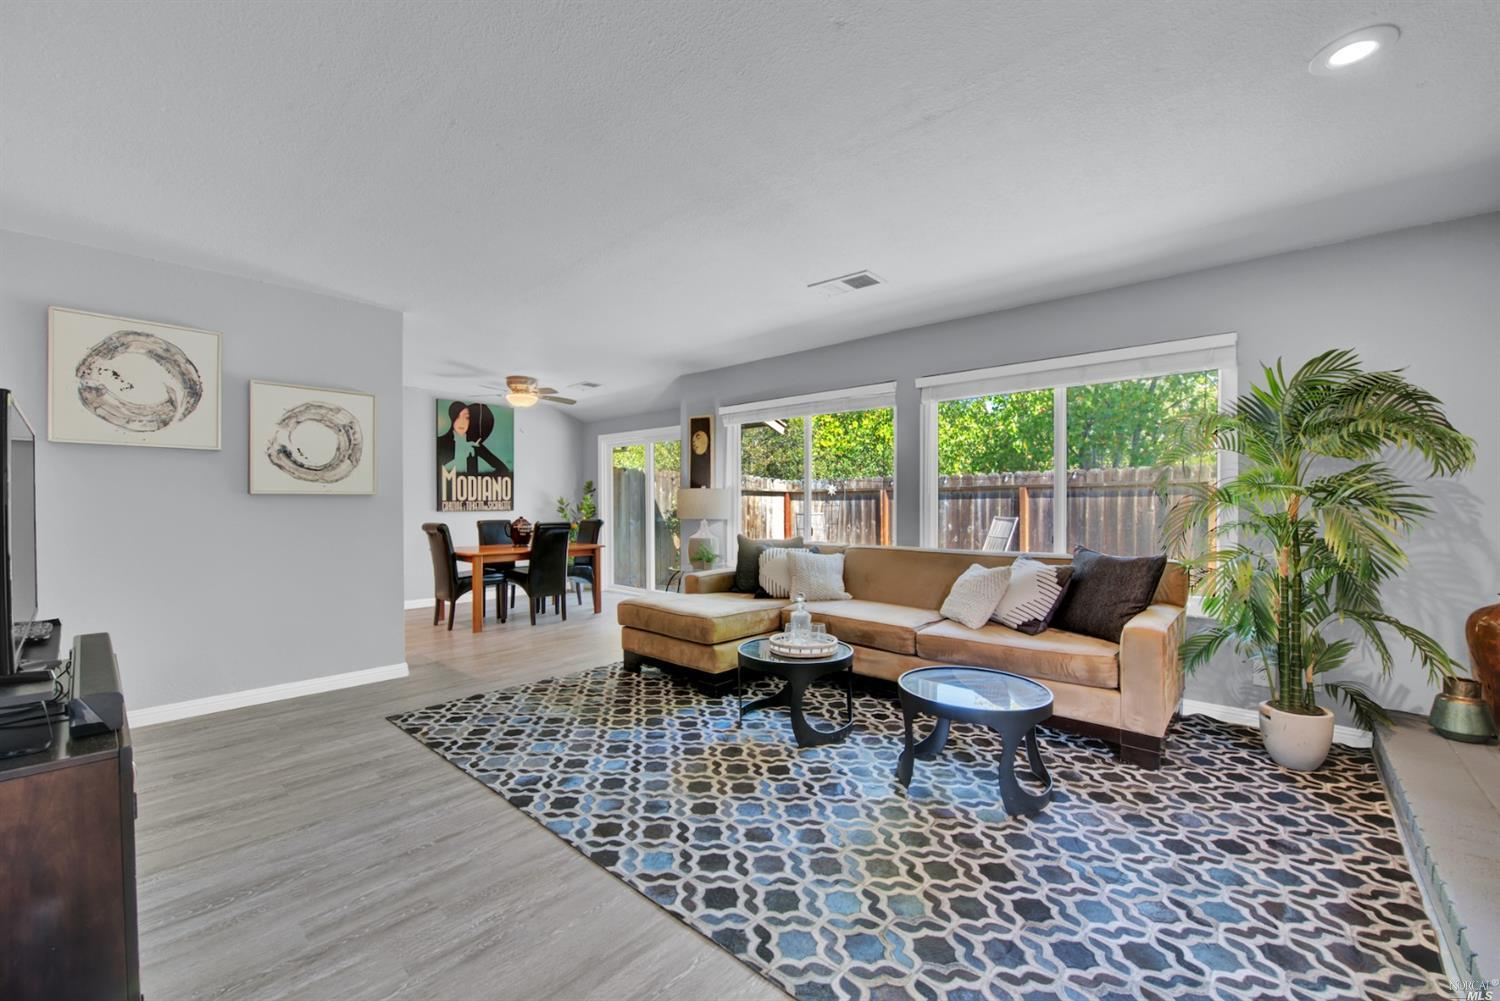 The Best Deal in Benicia 2021! This single story home is located in the beautiful and much sought-af